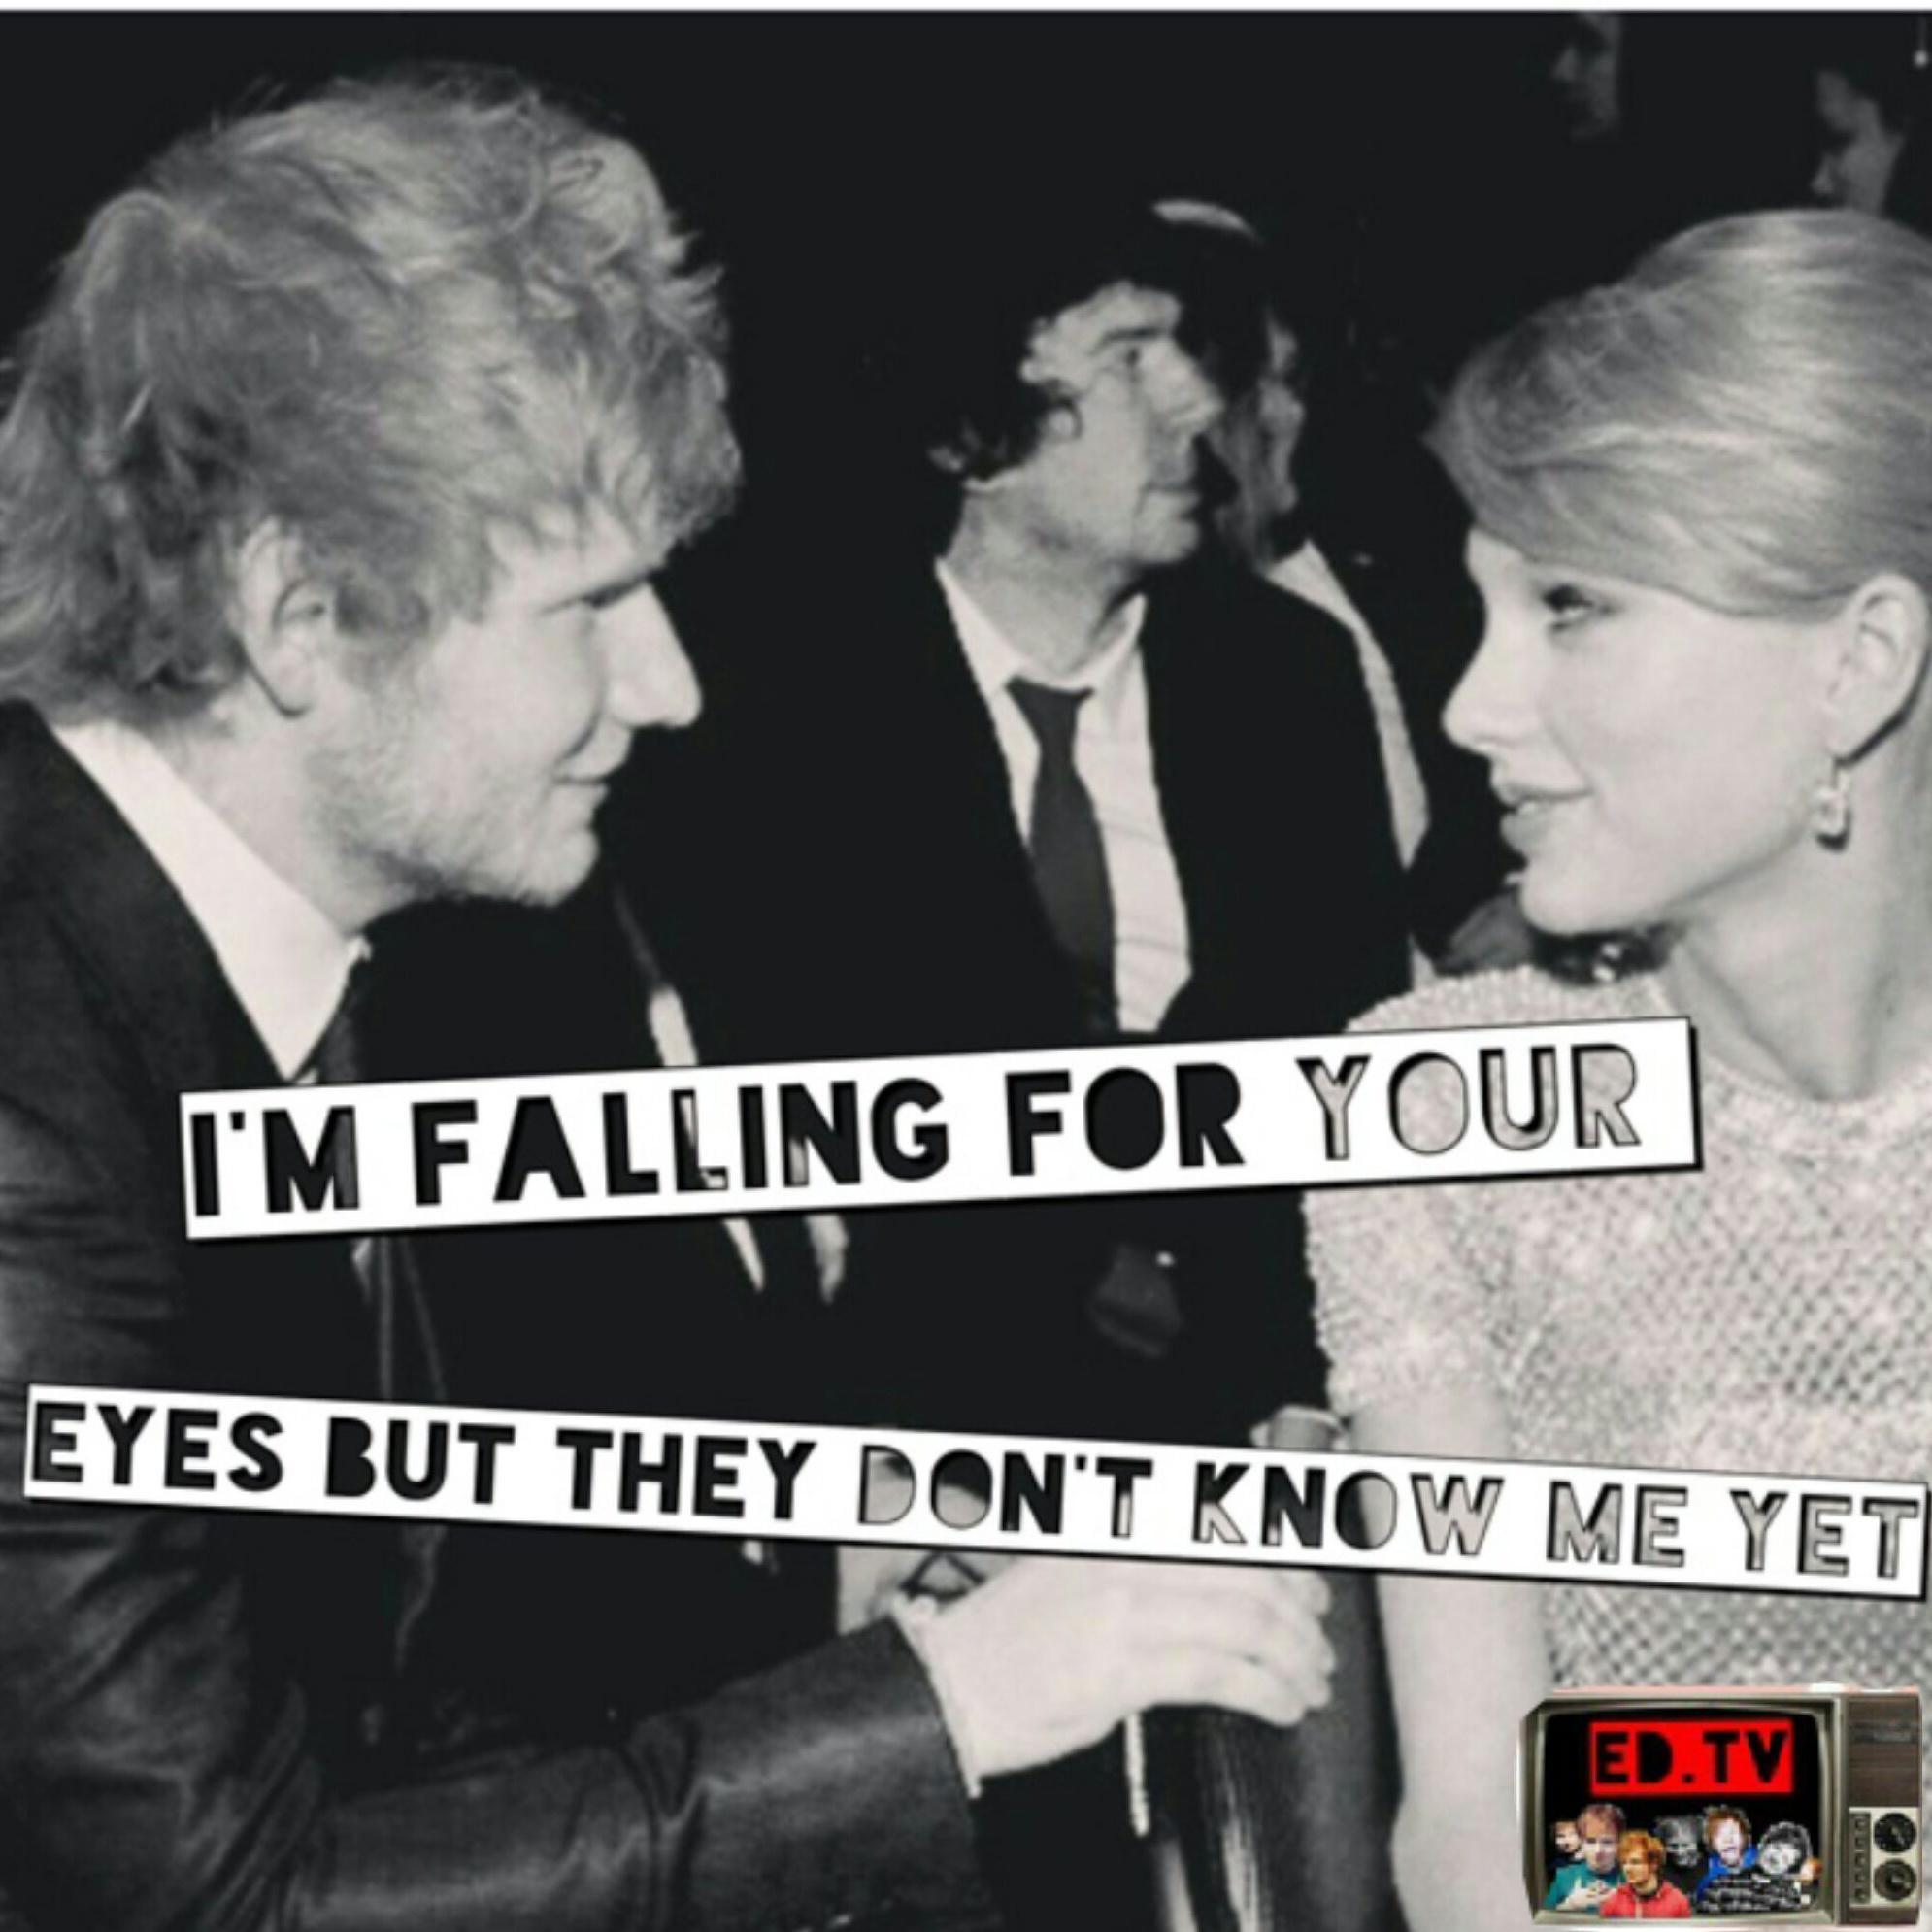 an ed.it I made haha pun intended